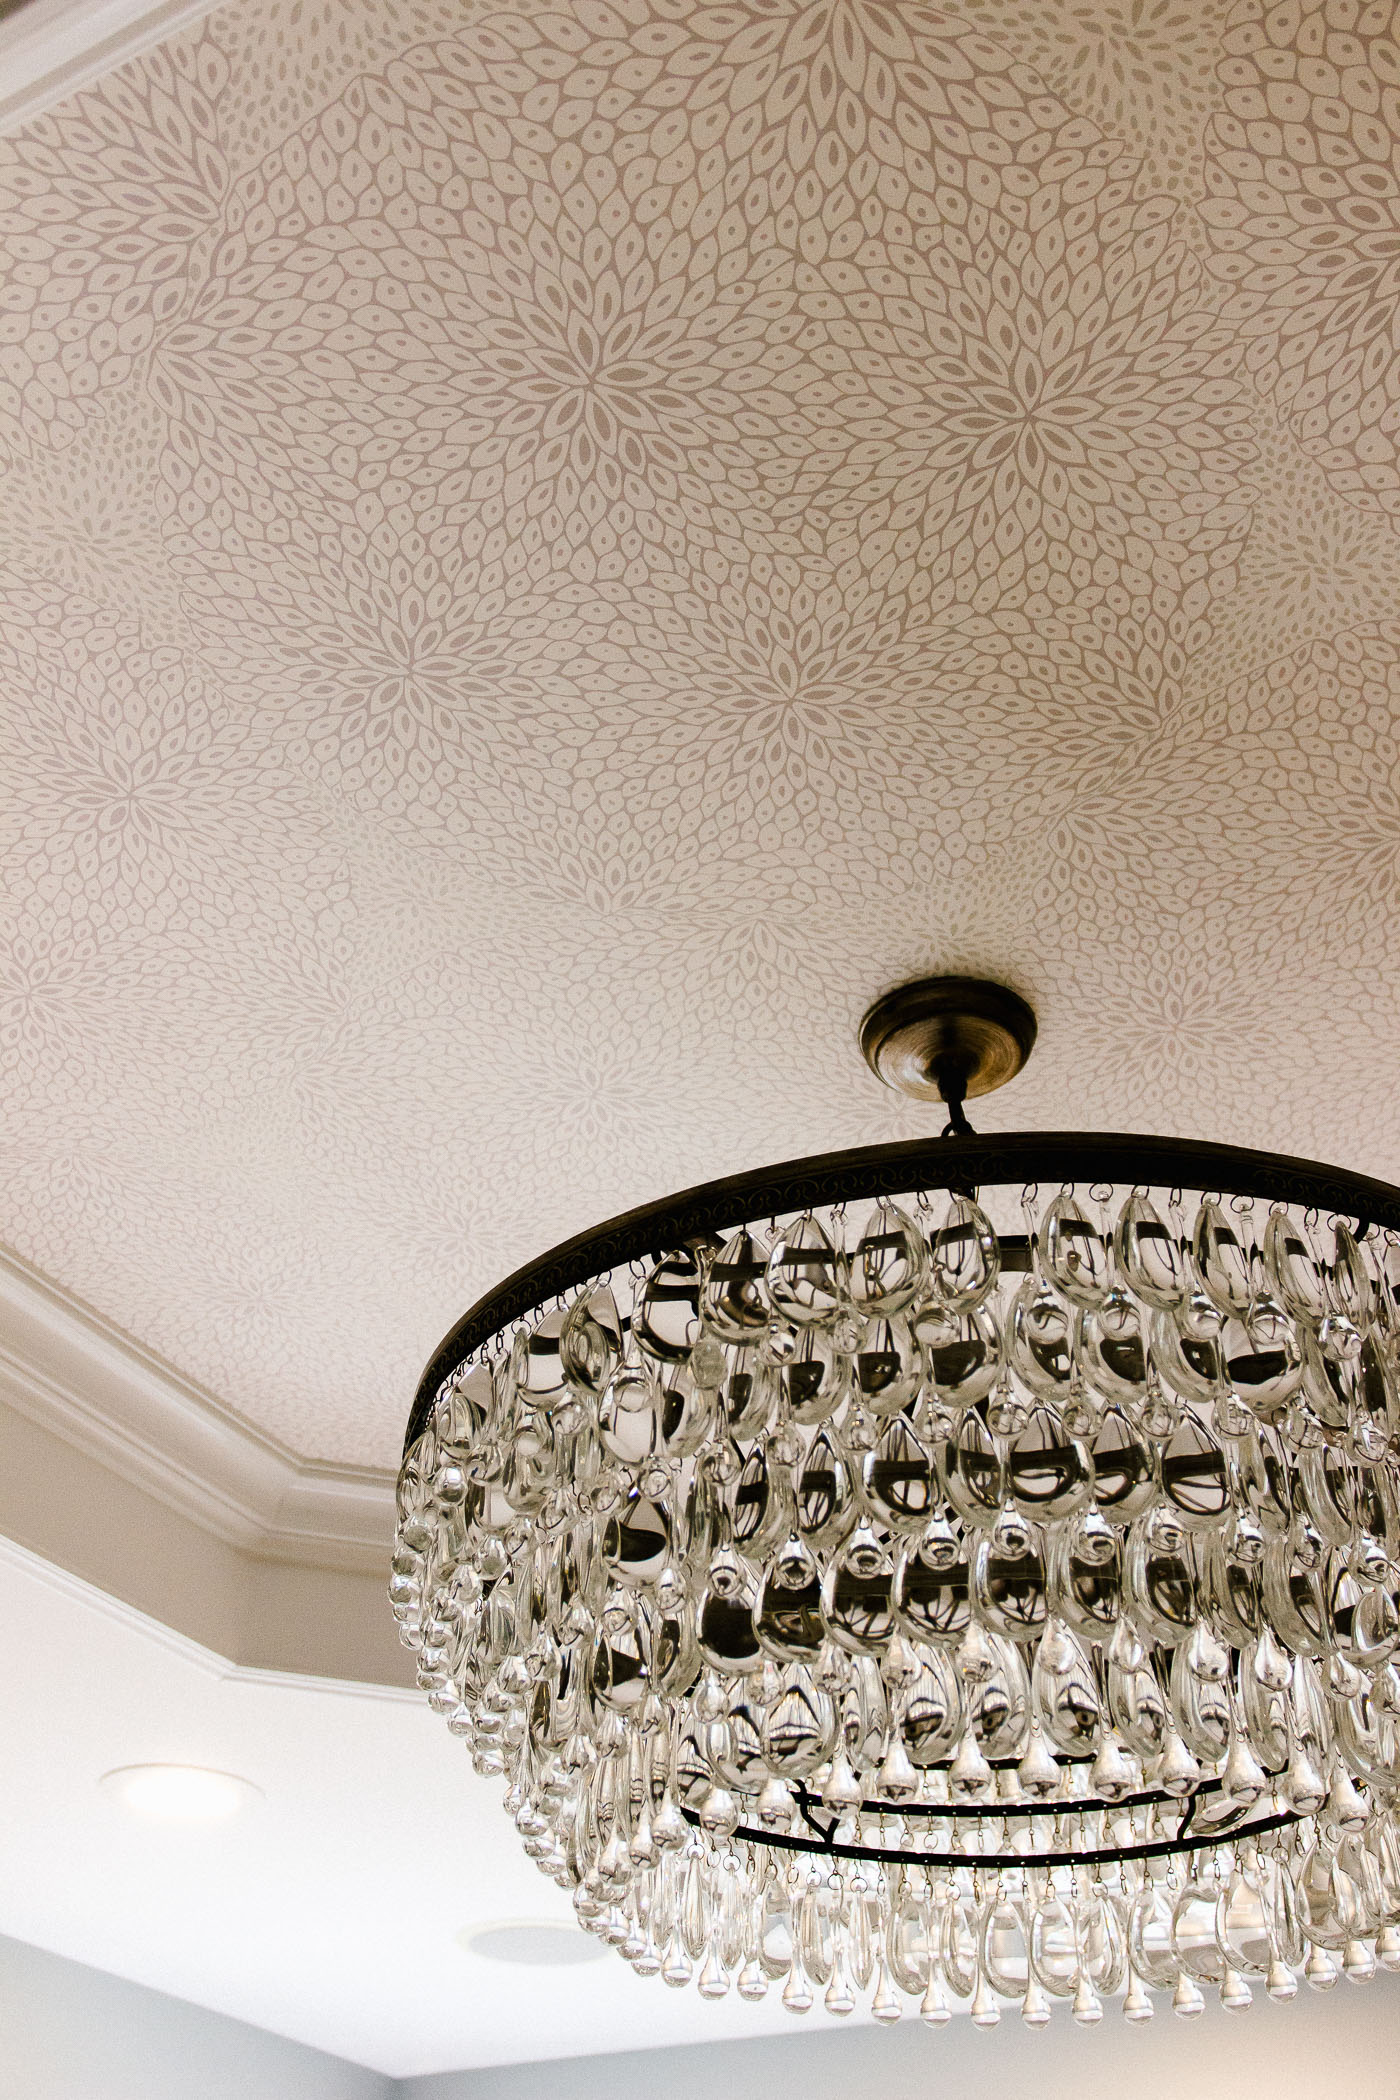 Wallpaper Tray Ceiling 1 Of 1 Shining On Design